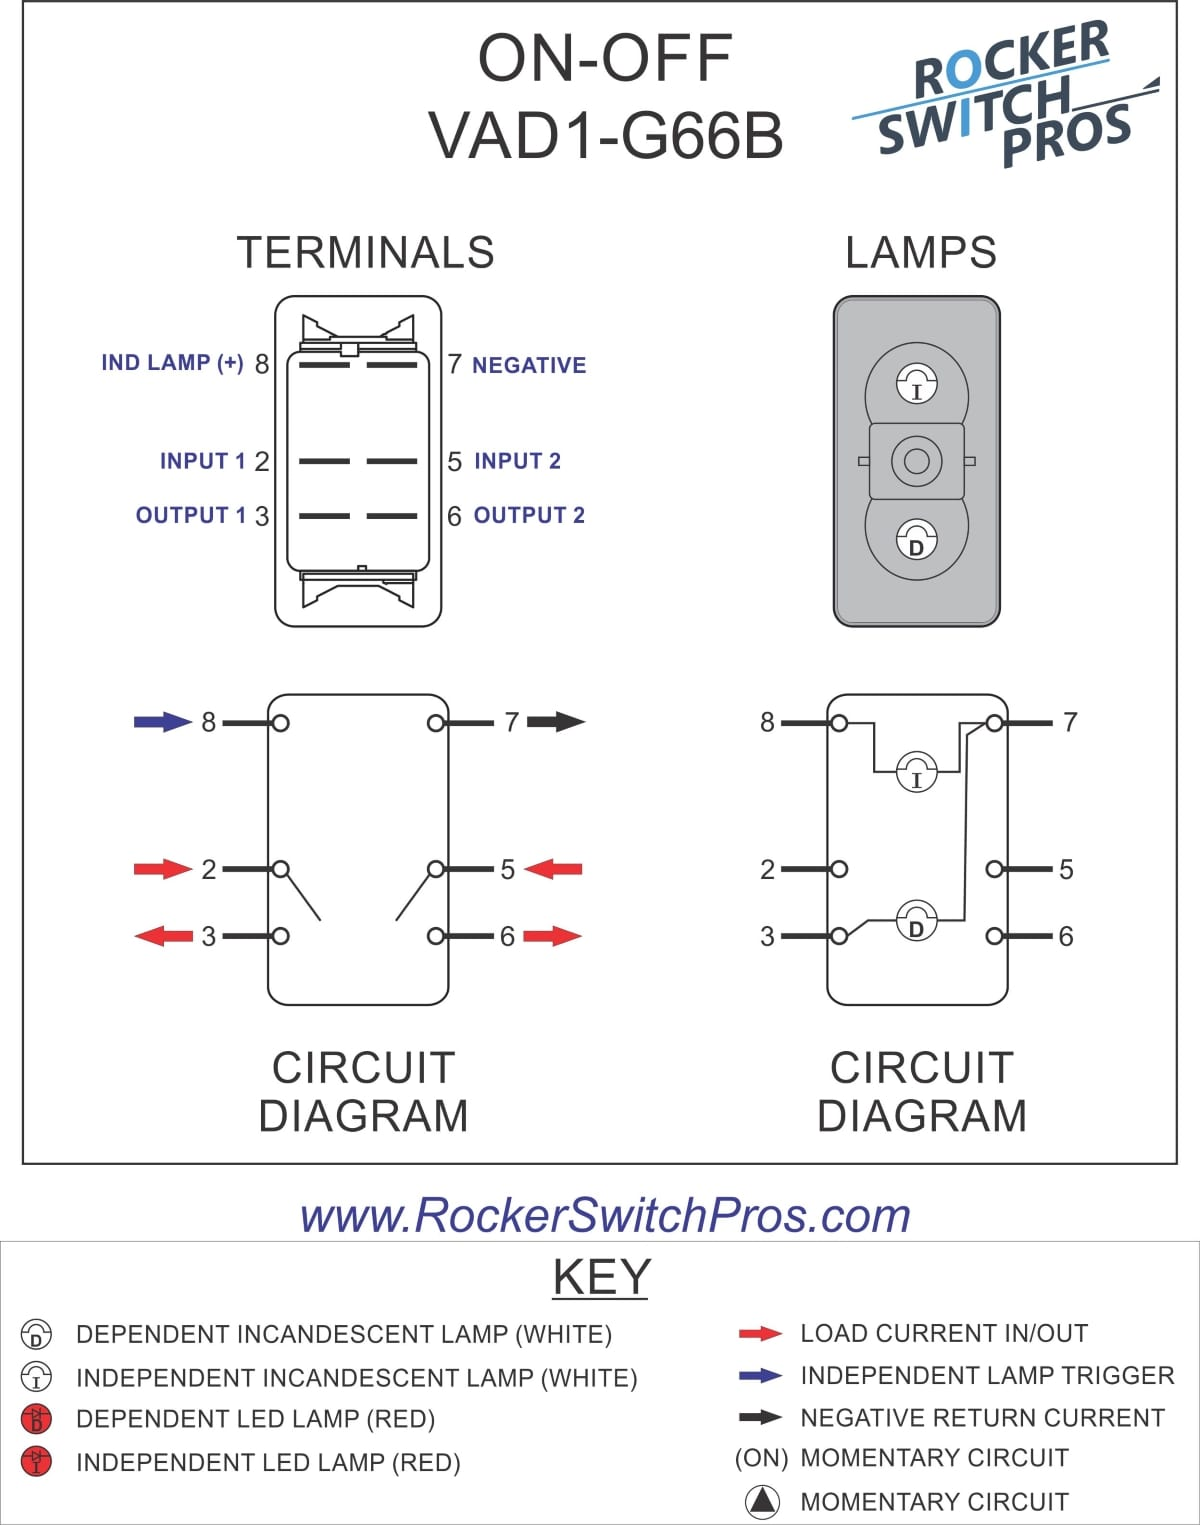 AL_9512] Hy29H Toggle Switch Wiring Diagram Wiring Diagram | Hy29h Toggle Switch Wiring Diagram |  | Librar Wiring 101